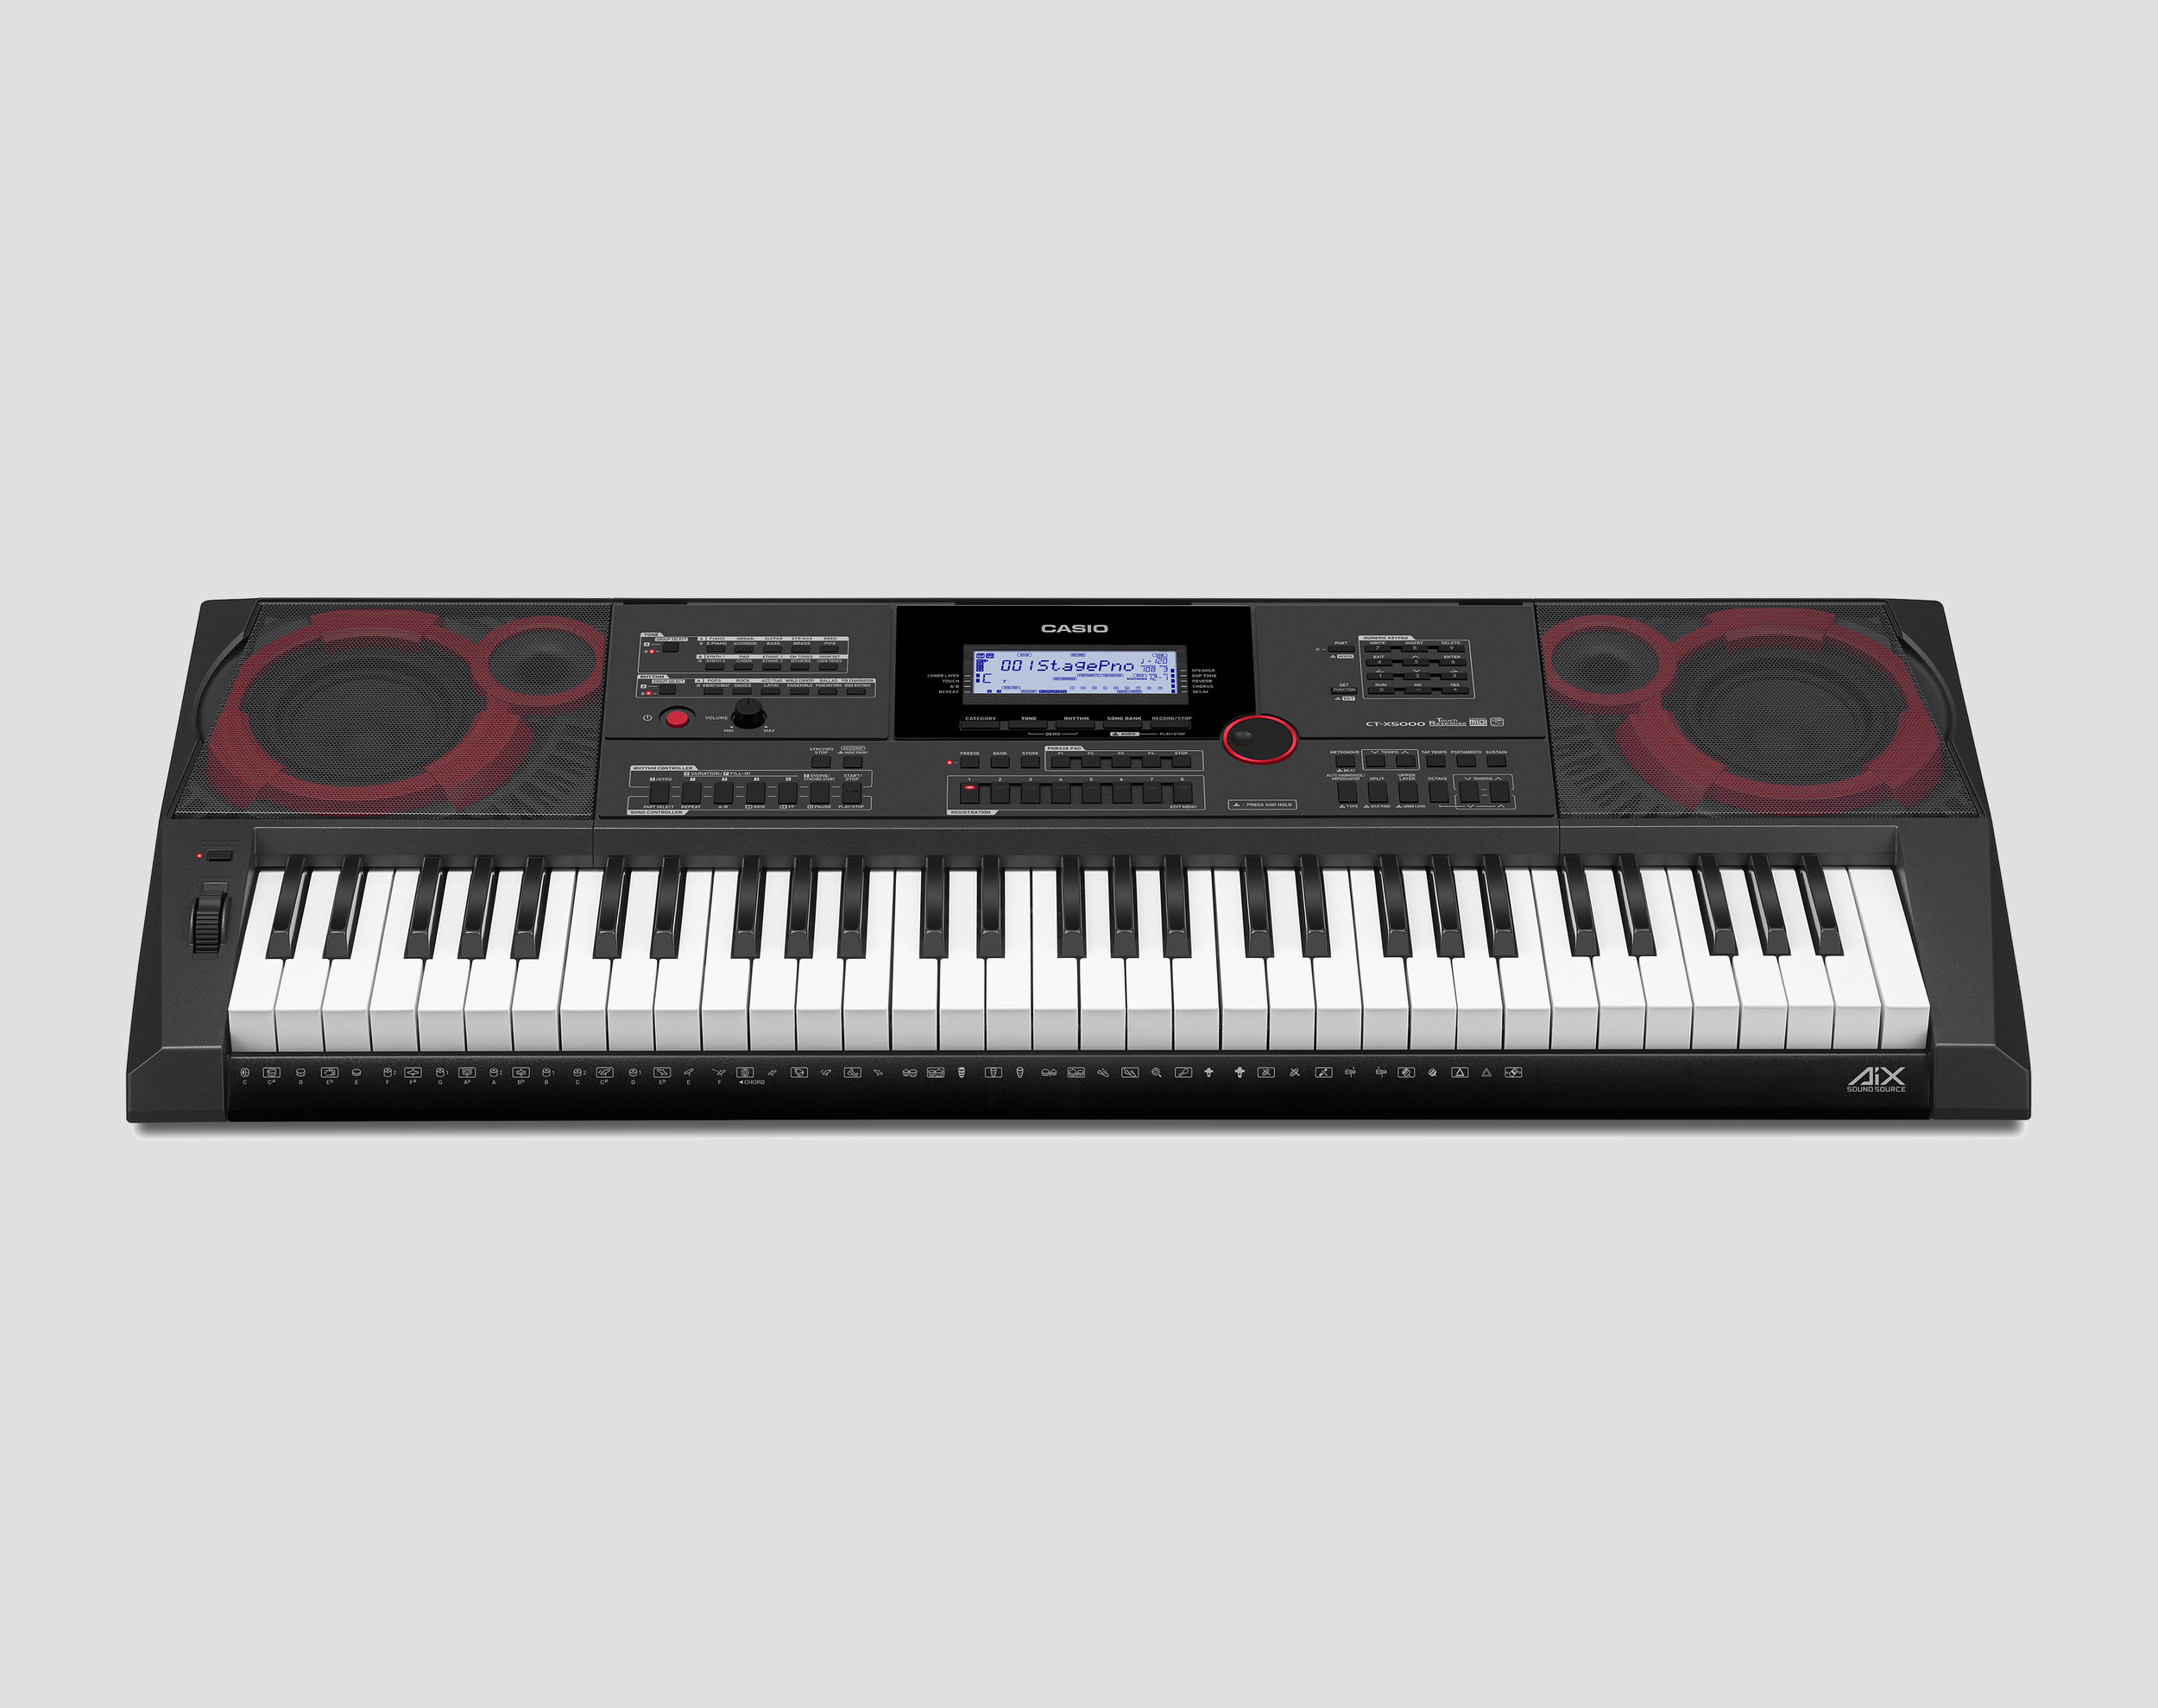 CASIO KEYBOARDS - enjoy. explore. educate